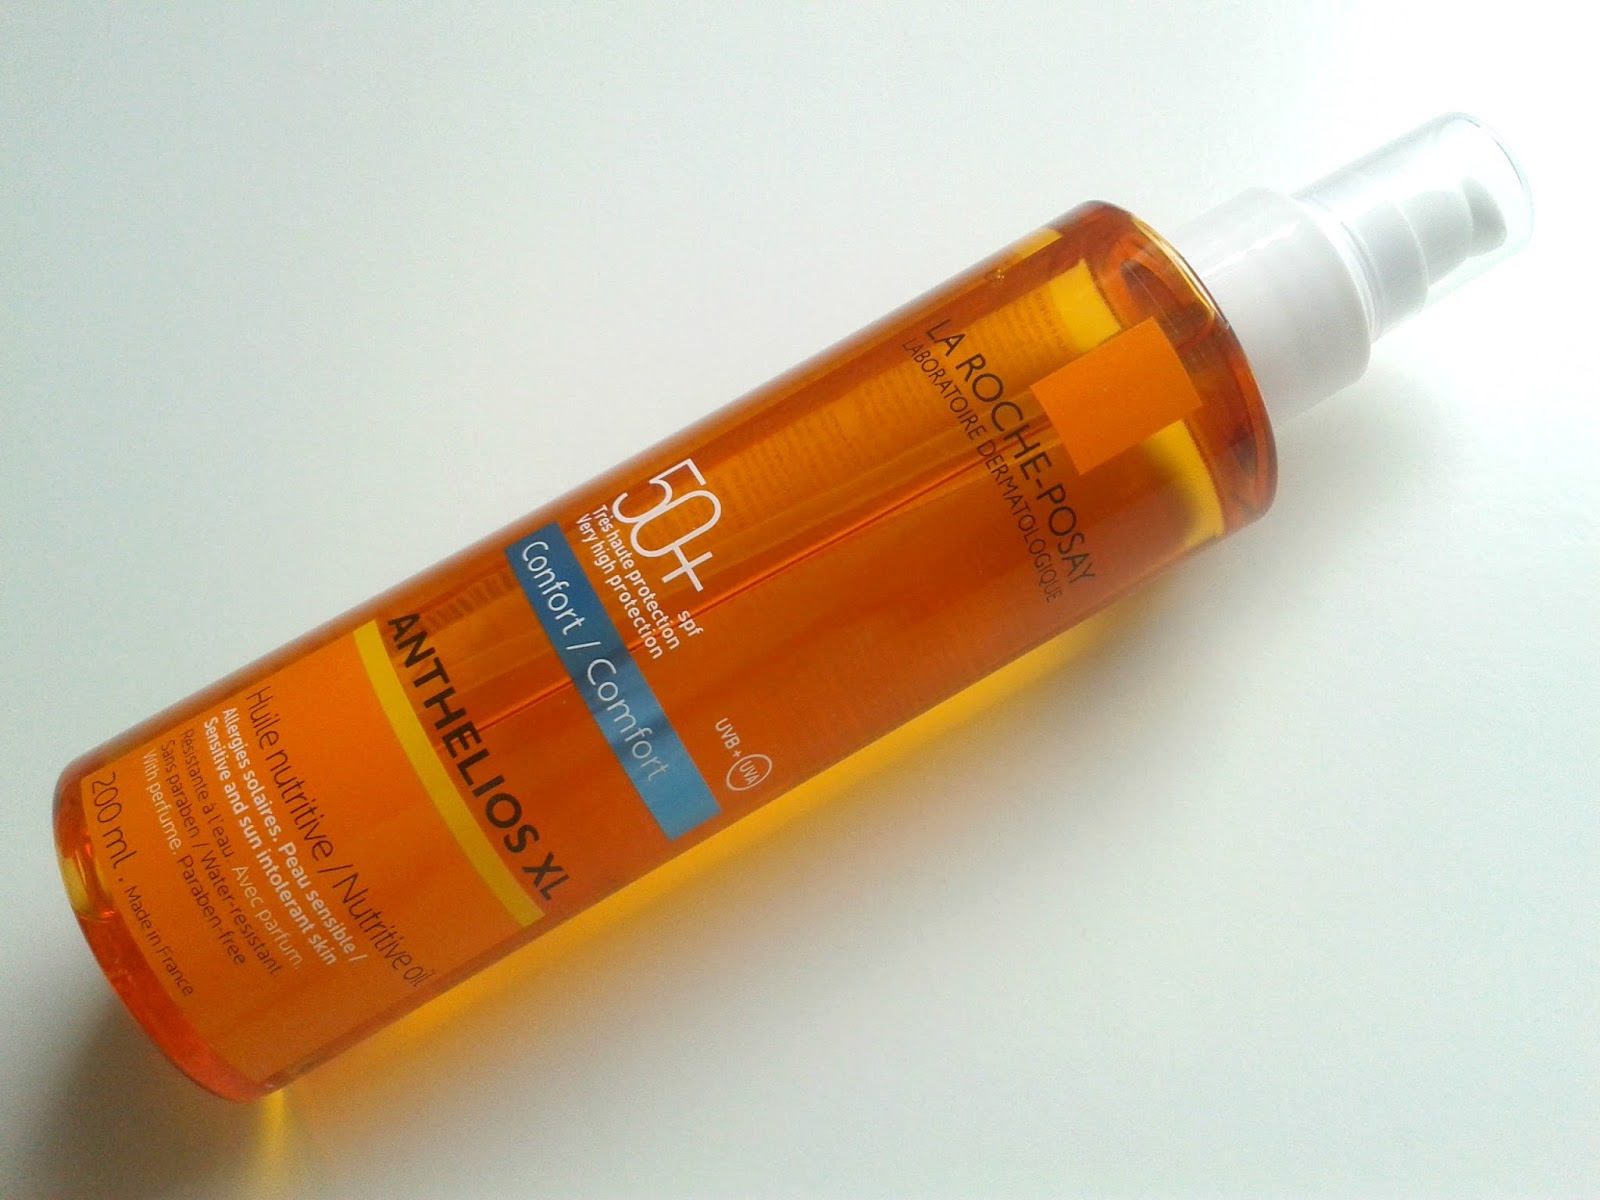 La Roche-Posay Anthelios Protective Oil SPF 50 Beauty Review